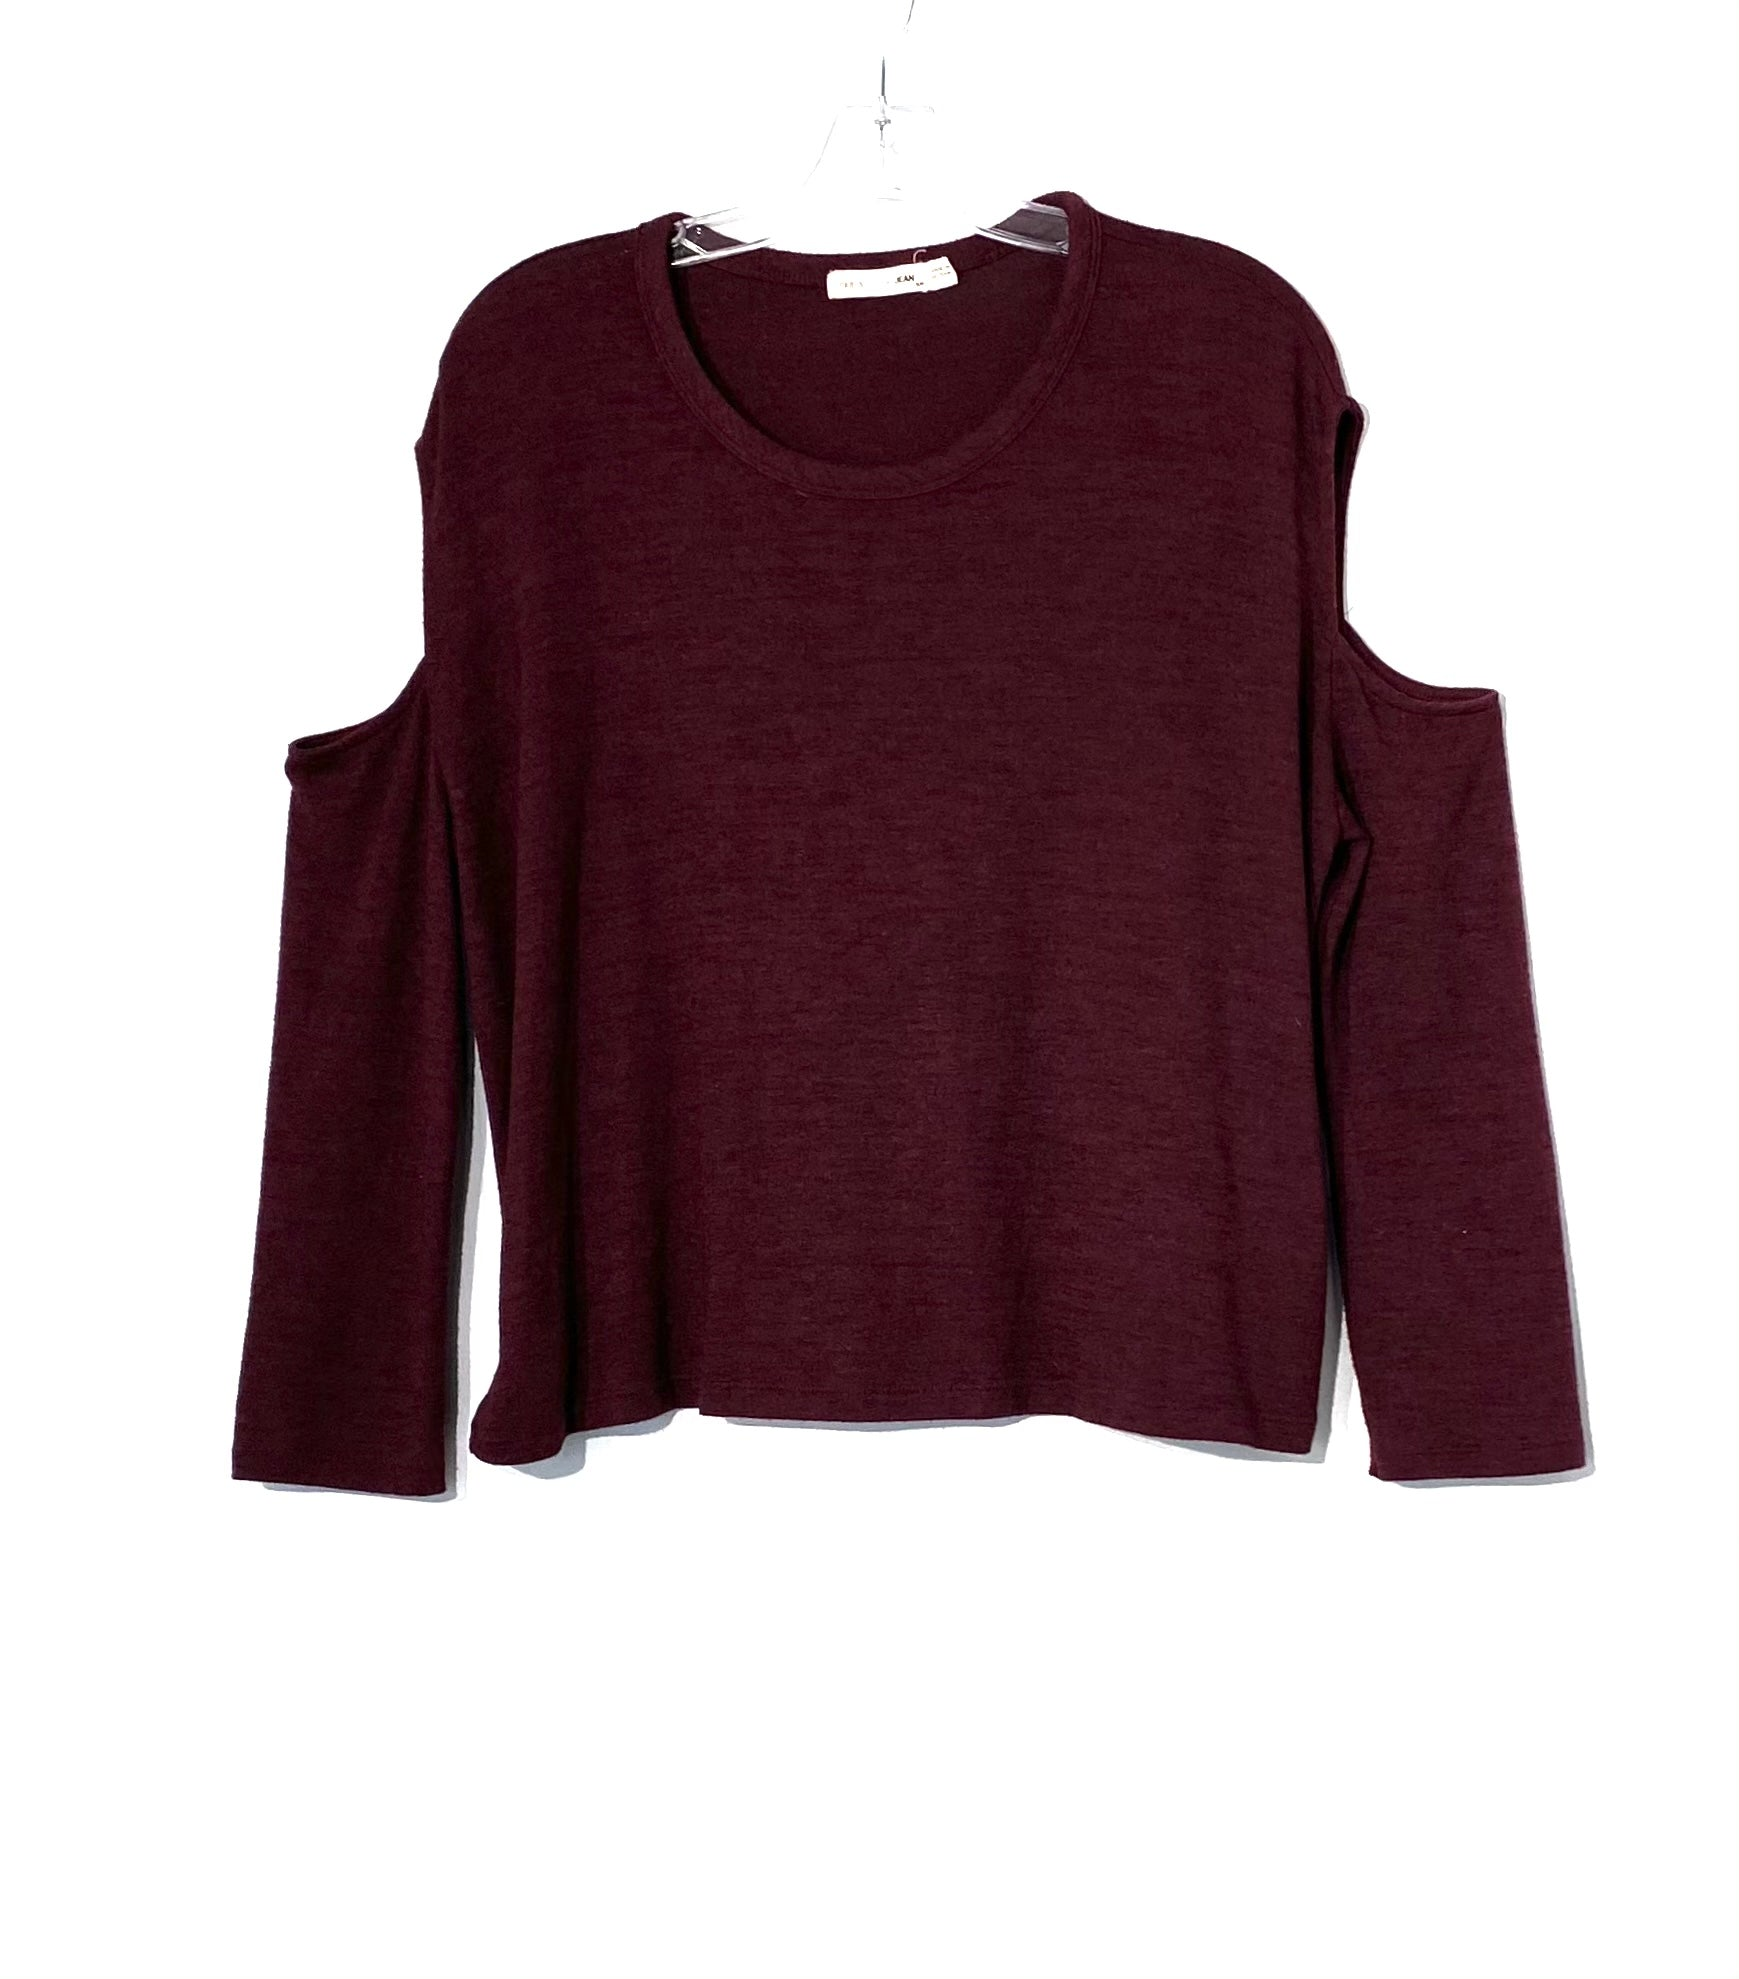 Primary Photo - BRAND: RAG & BONES JEANS <BR>STYLE: TOP LONG SLEEVE <BR>COLOR: BURGUNDY <BR>SIZE: S <BR>SKU: 262-26241-43915<BR>4% SPANDEX <BR>COLD SHOULDER STYLE